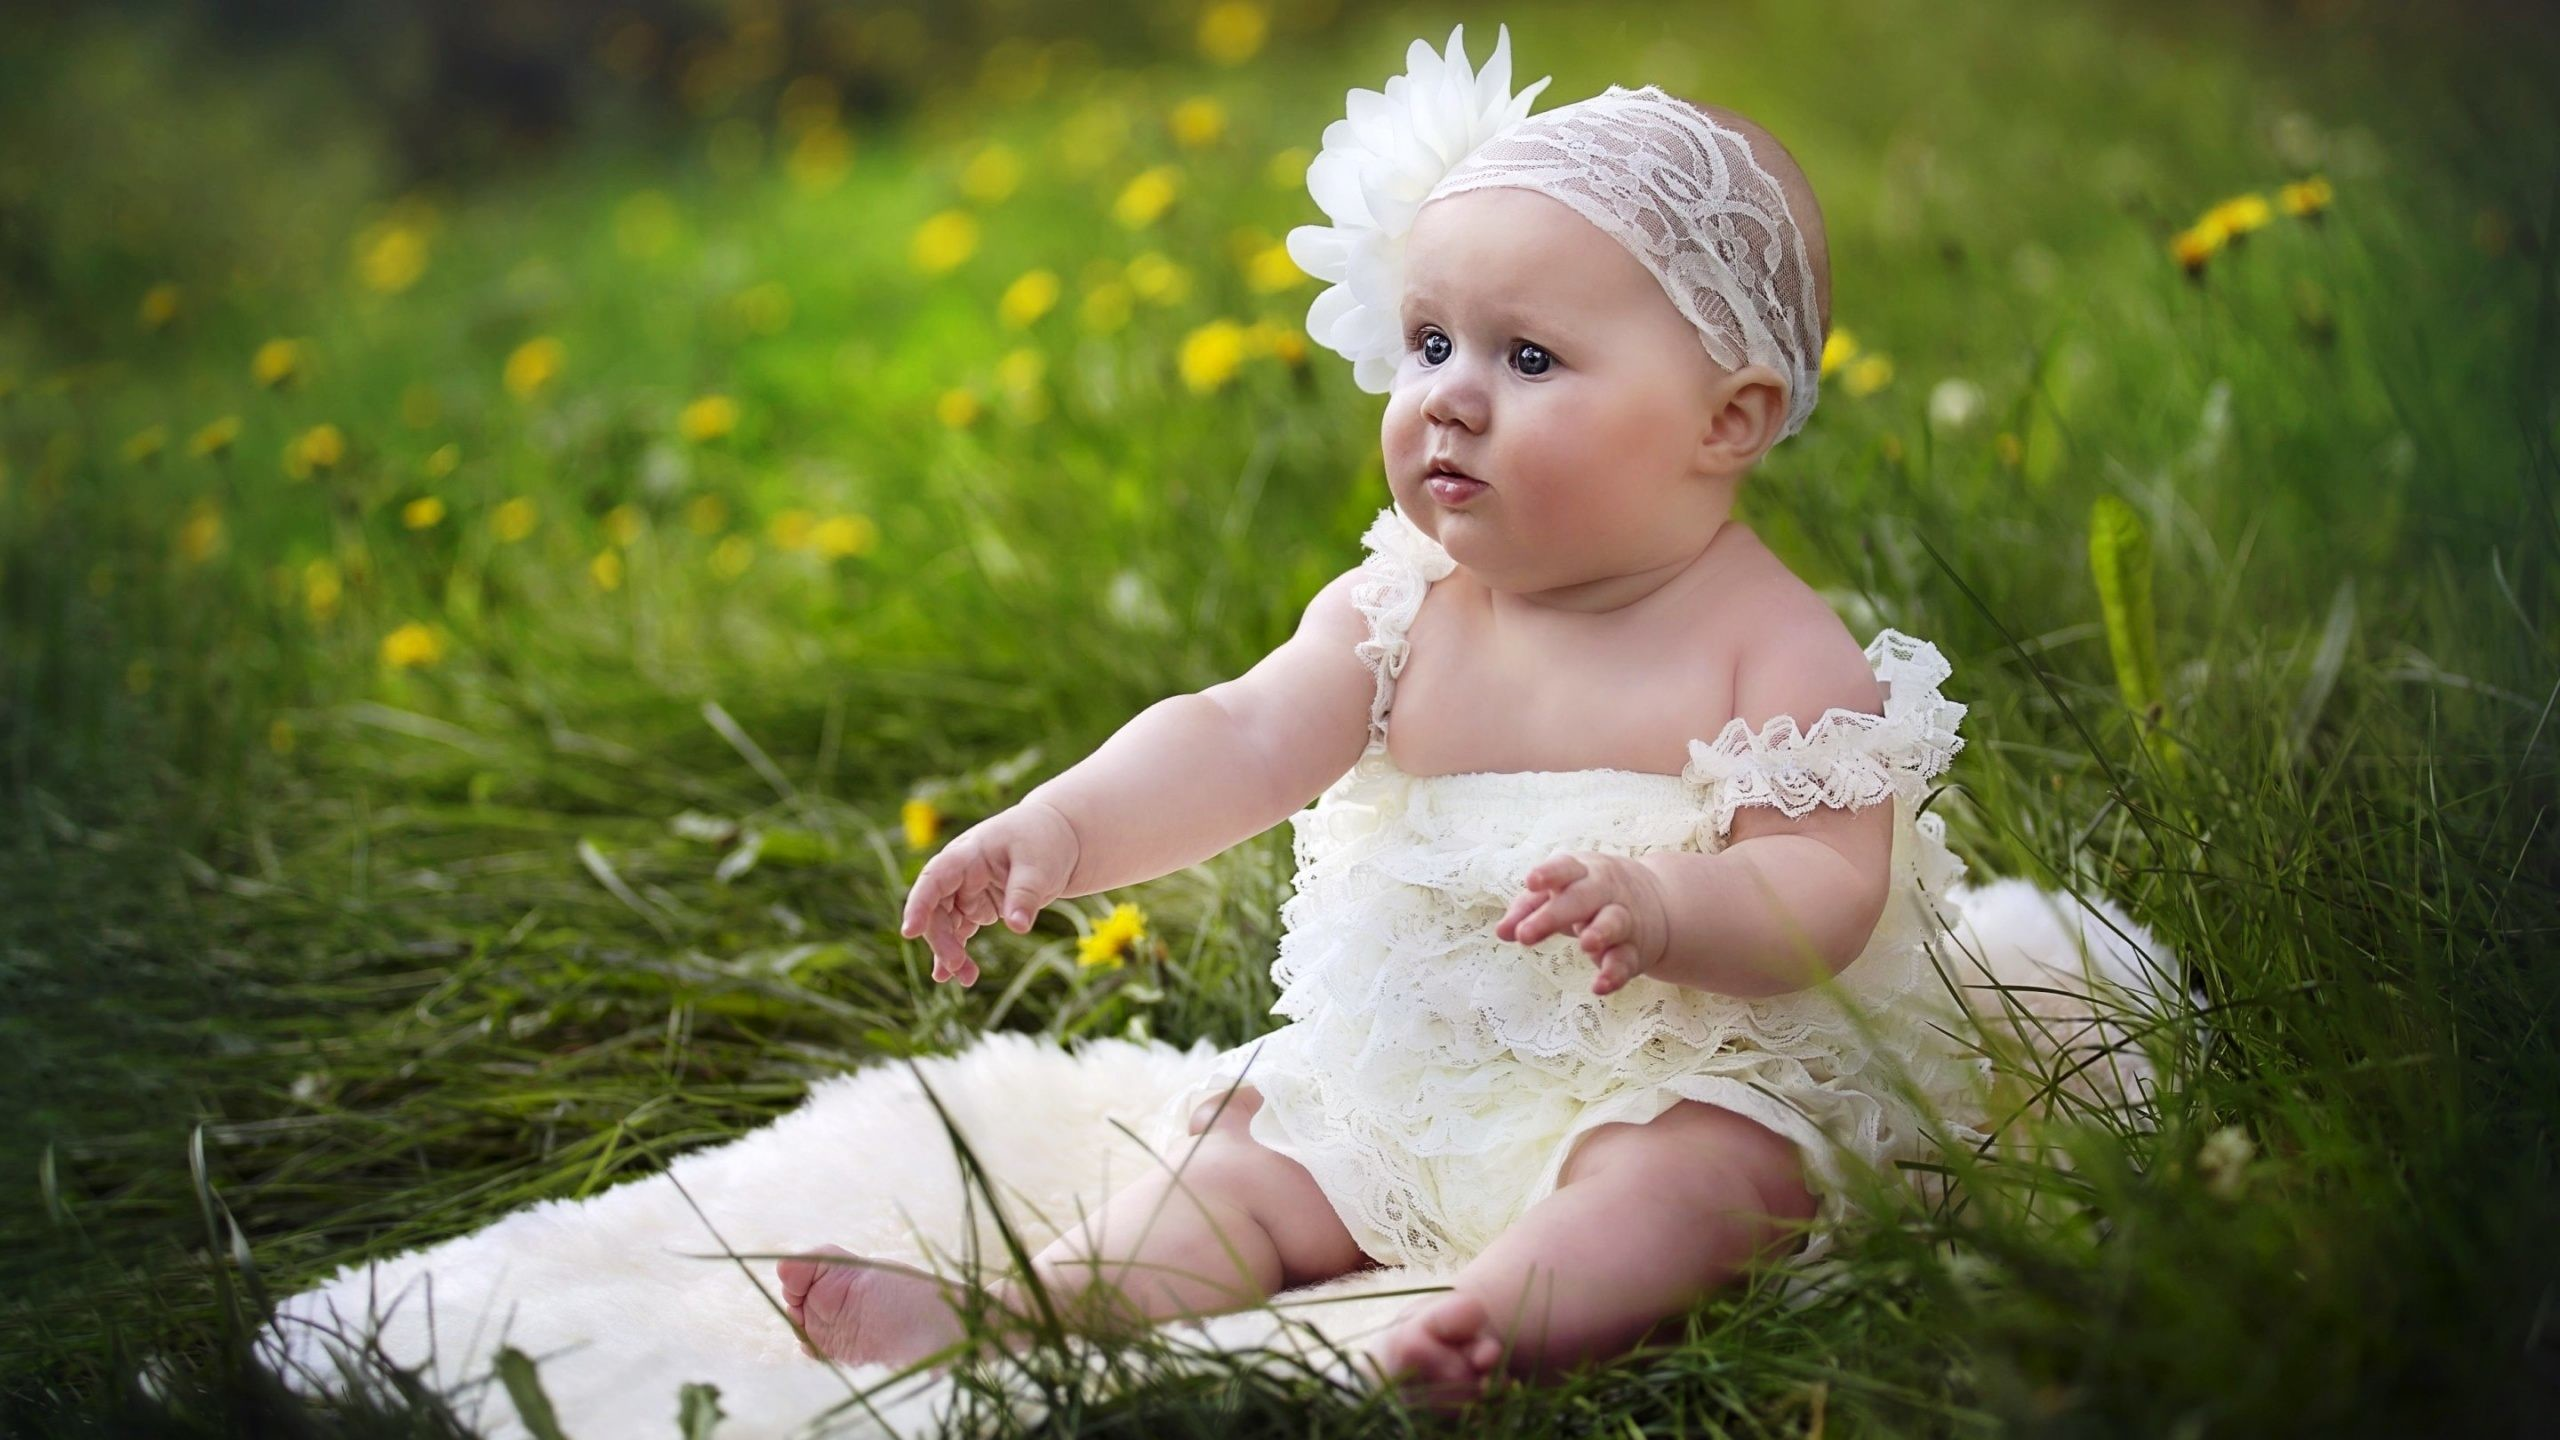 2560x1440 Beautiful Sweet Baby: Wallpaper|Sweet Beautiful Baby Girl HD Free . ...